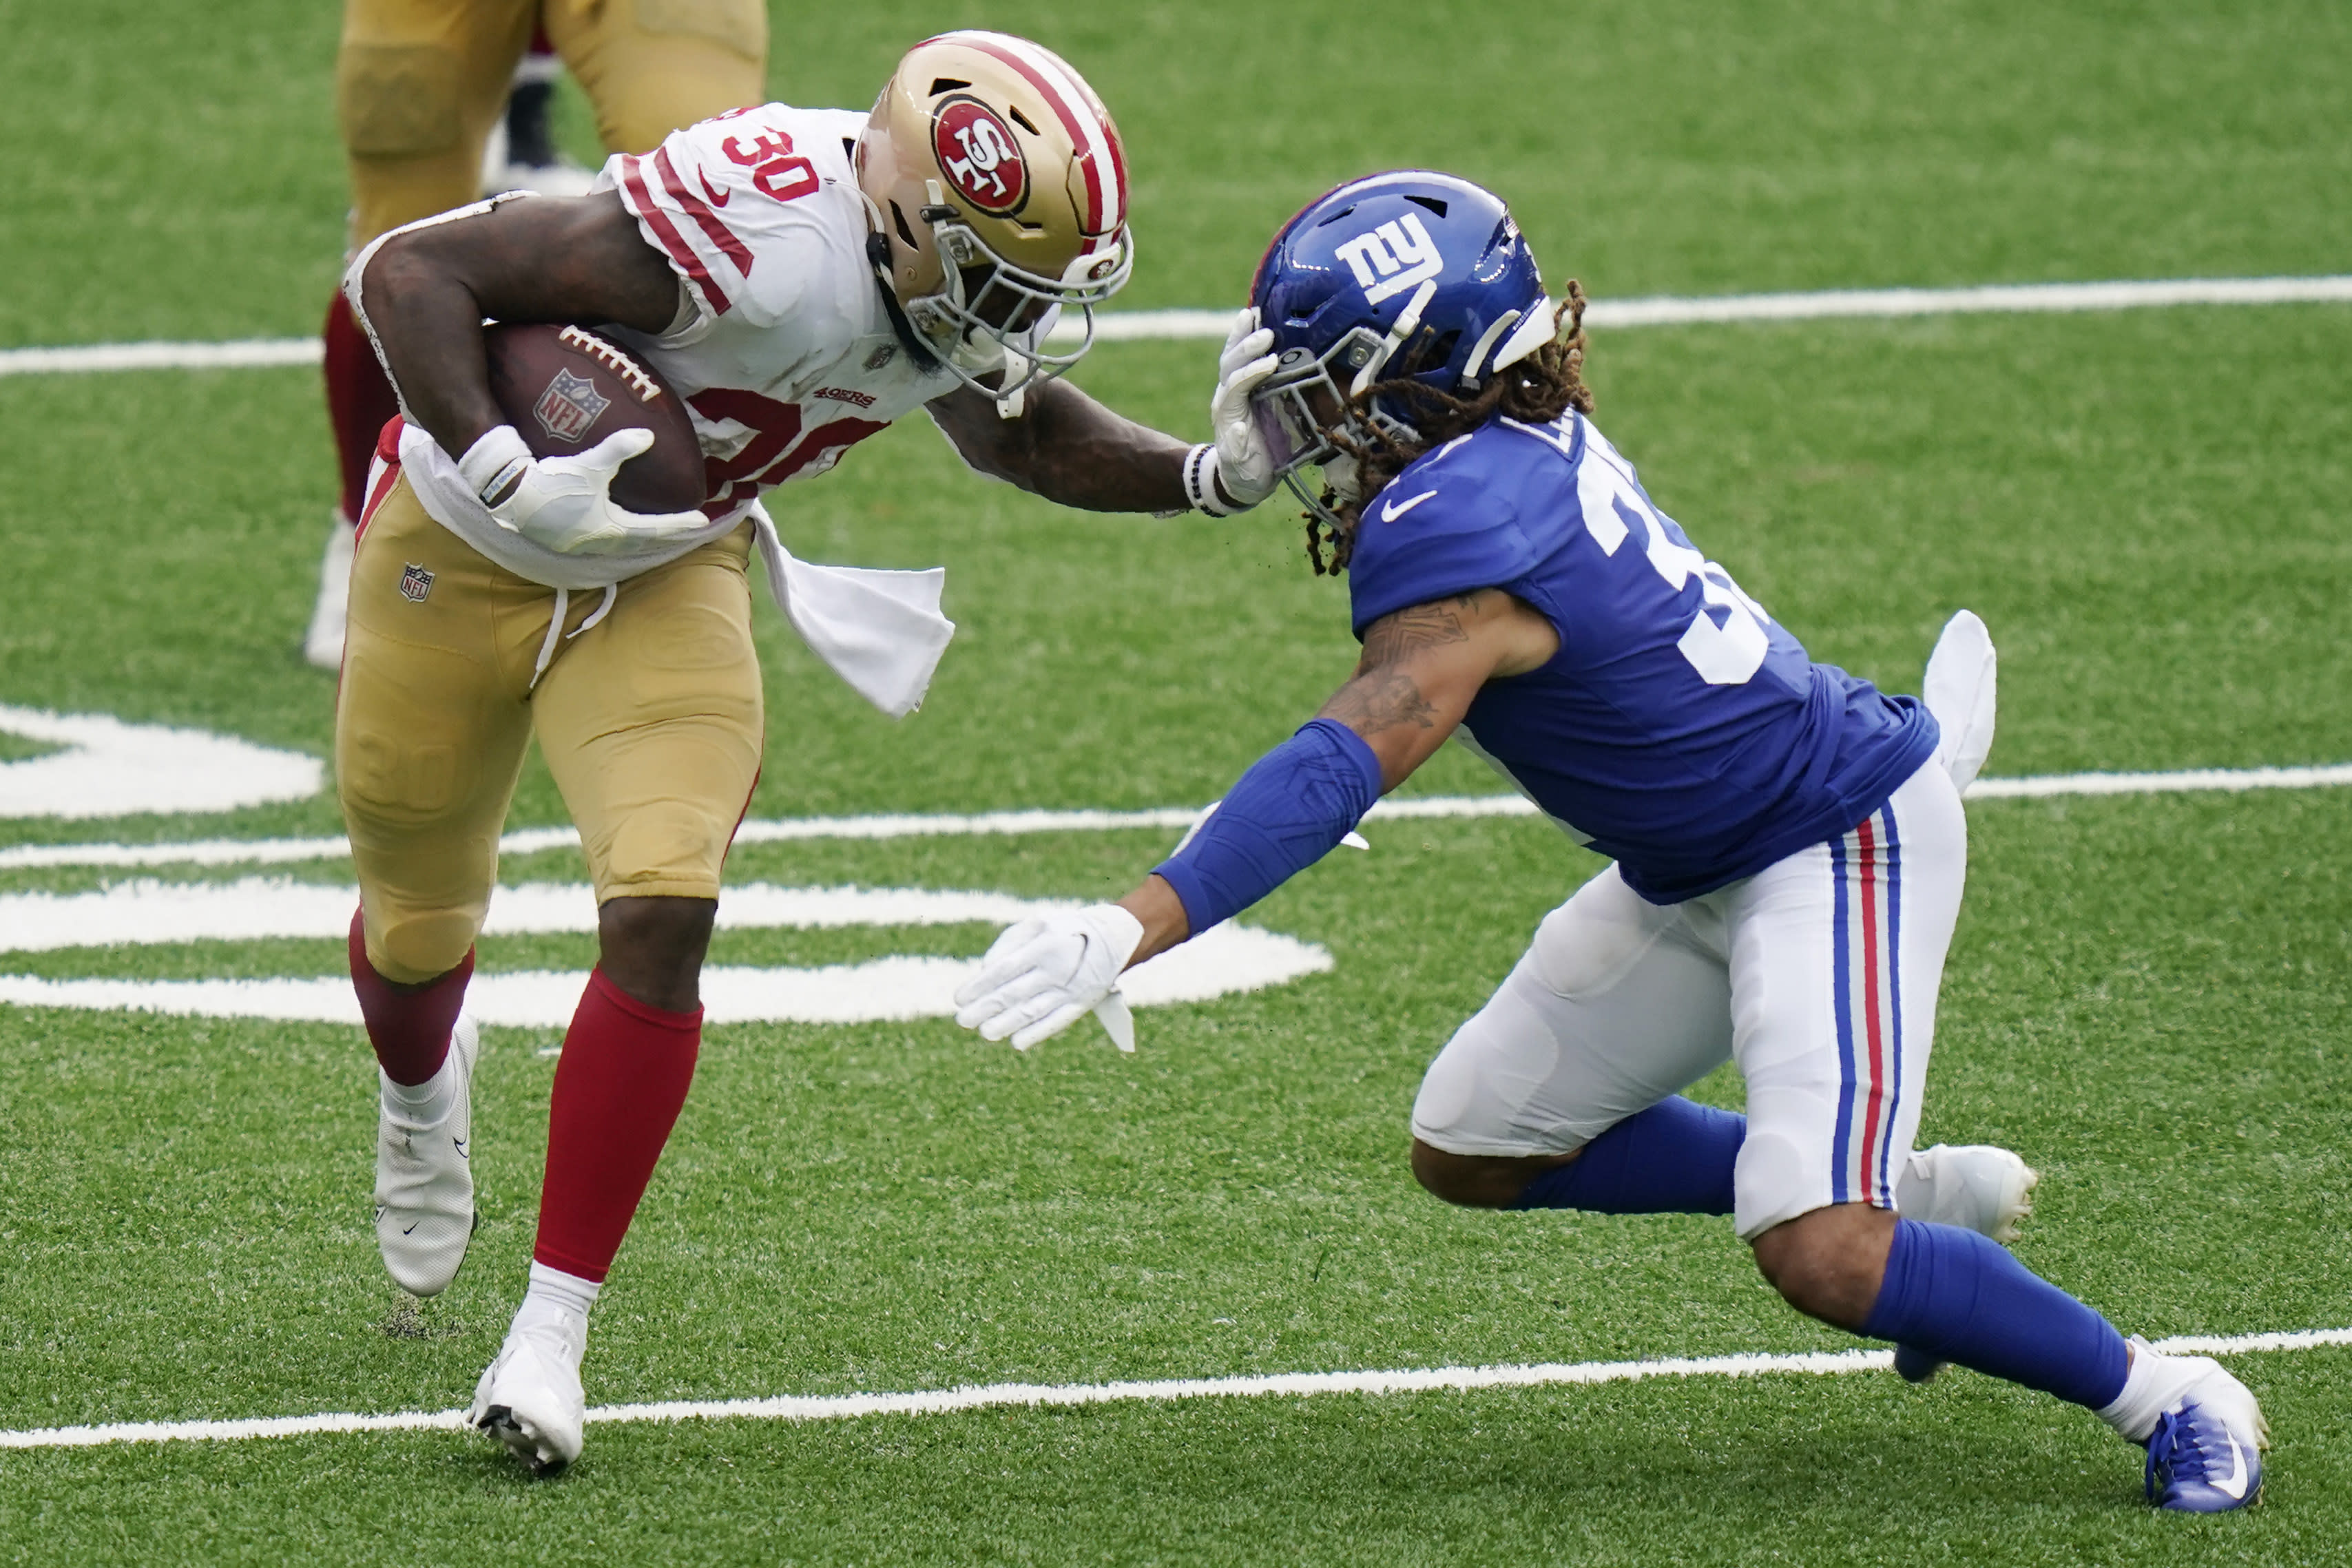 San Francisco 49ers' Jeff Wilson, left, fends off New York Giants' Ryan Lewis during the second half of an NFL football game, Sunday, Sept. 27, 2020, in East Rutherford, N.J. (AP Photo/Corey Sipkin)